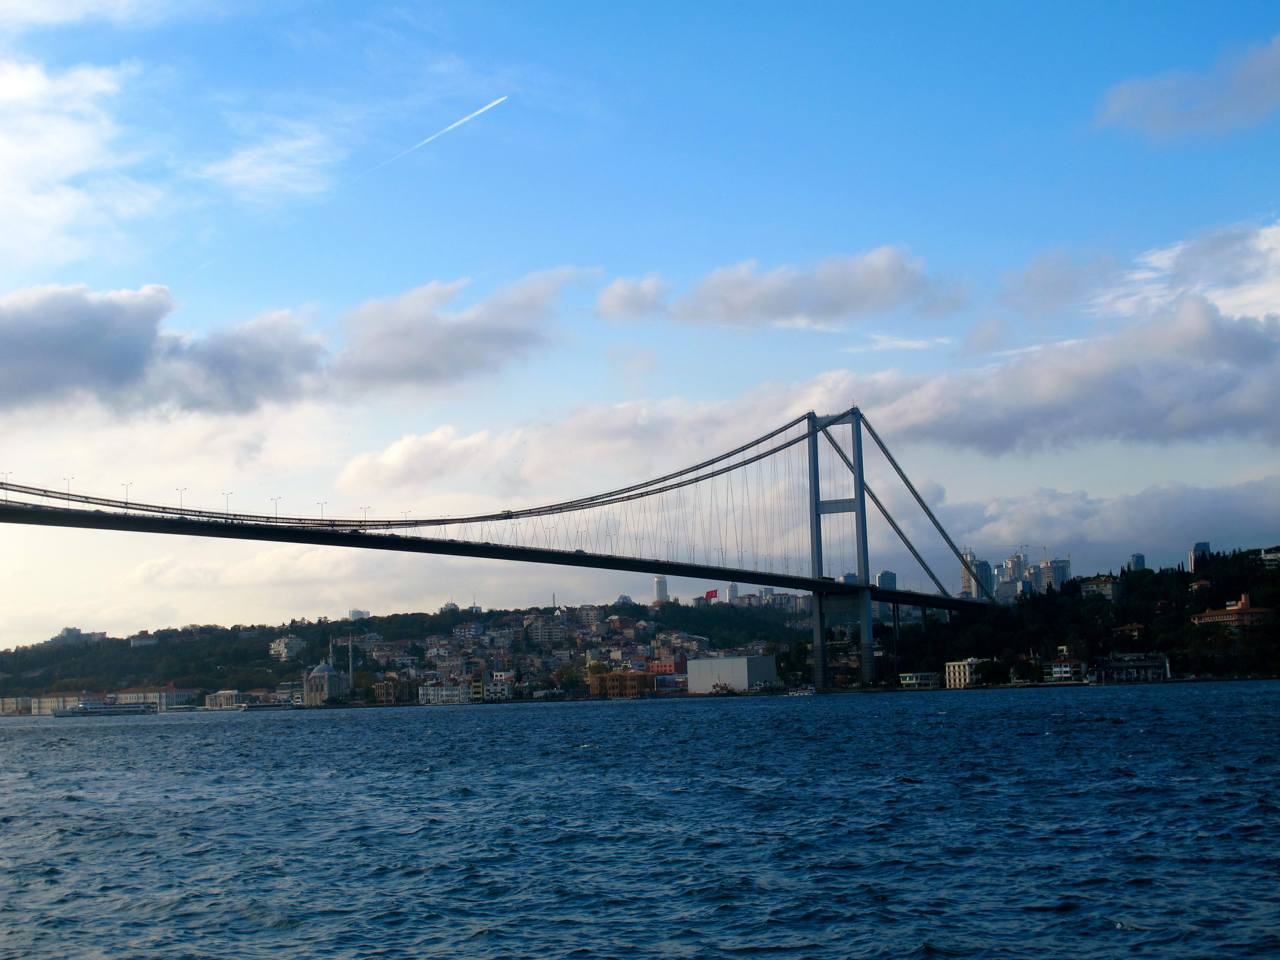 One the two bridges over Bosphorus